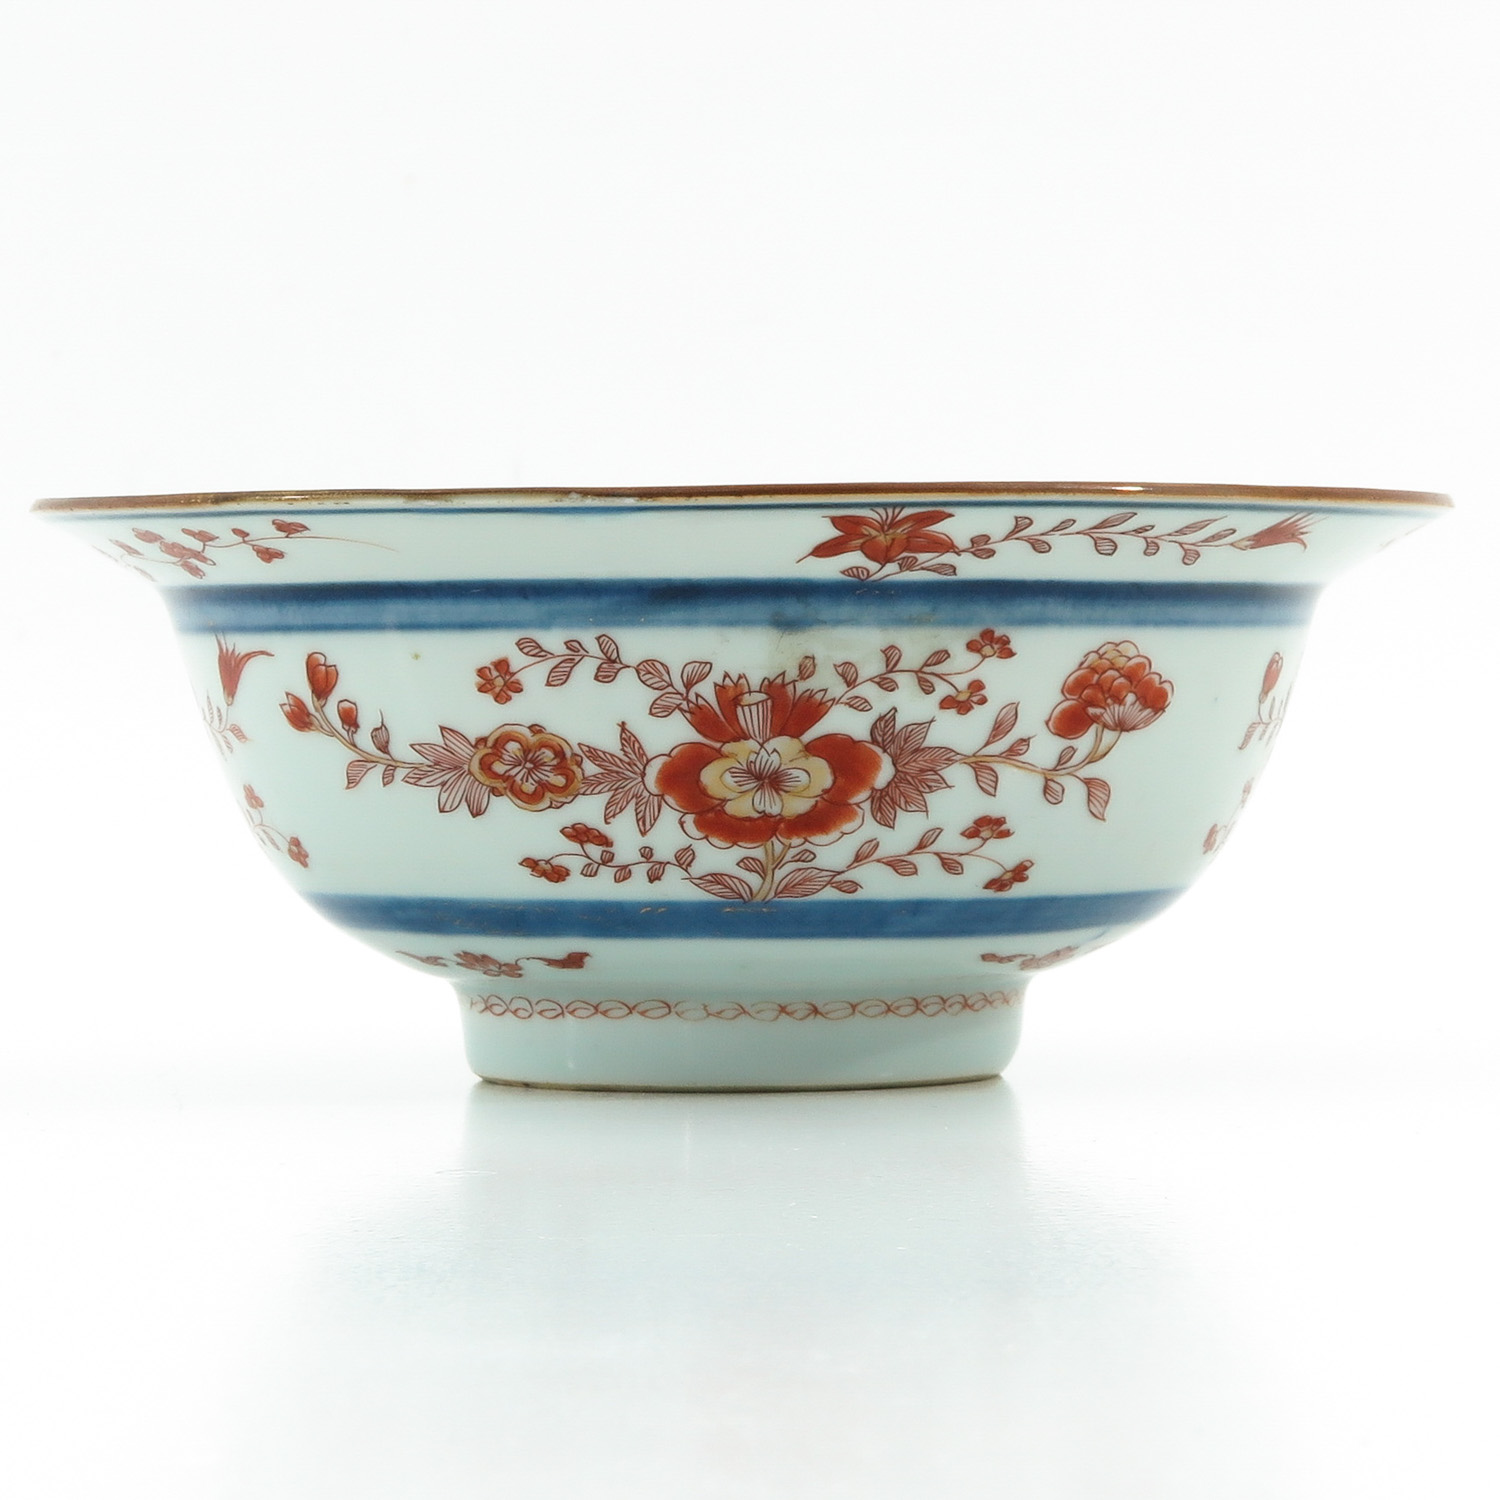 A Blue and Iron Red Bowl - Image 3 of 9